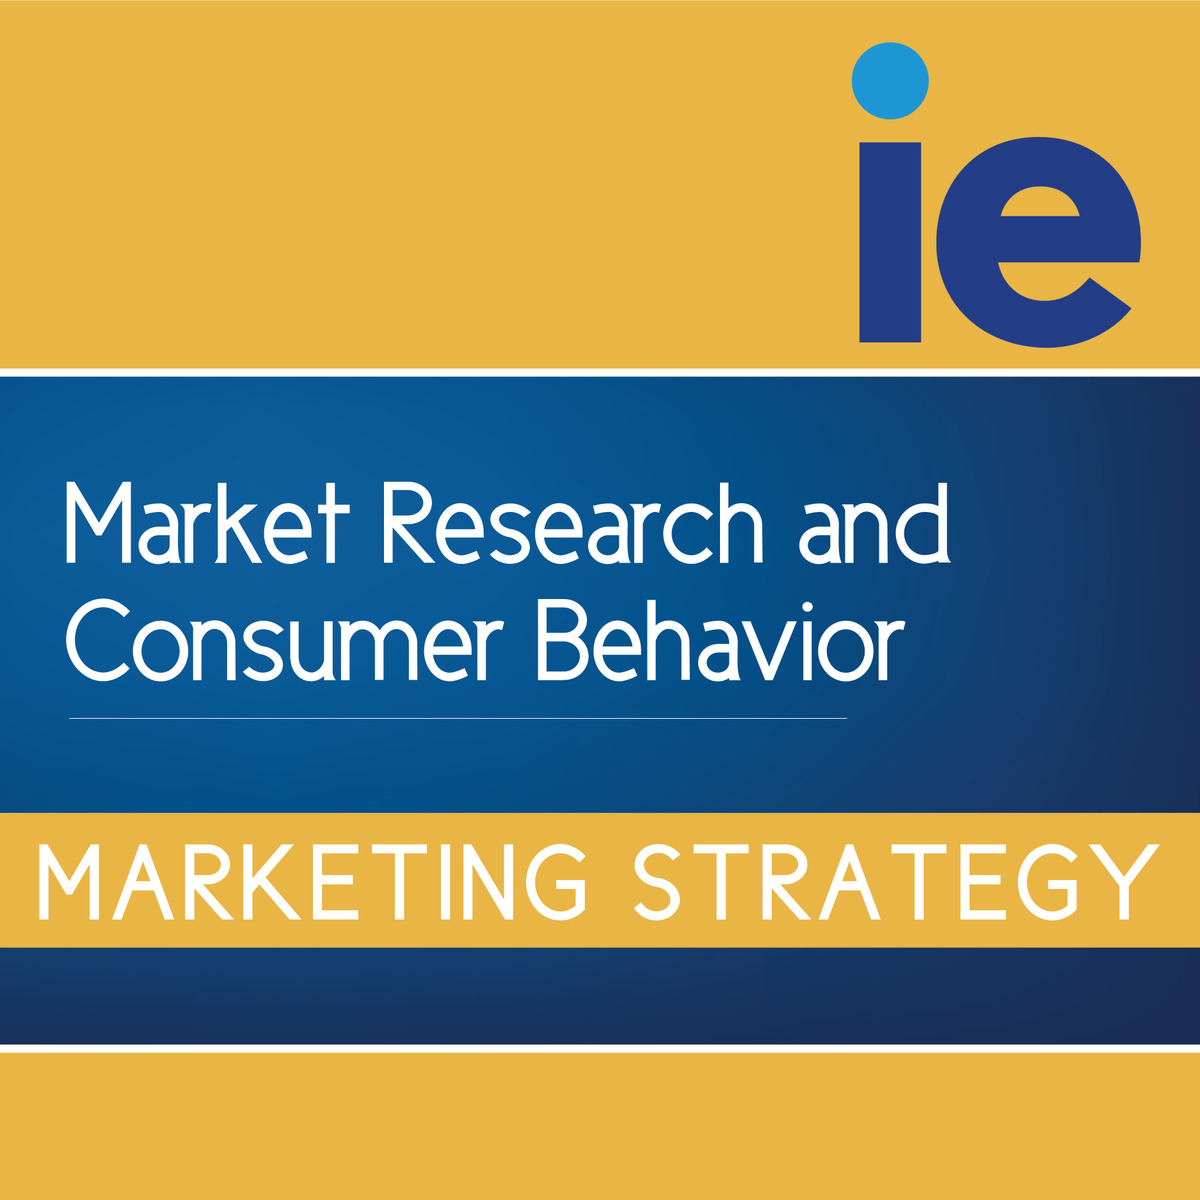 researching consumer behaviour Best of msi: marketing in a politically polarized era jan 11 an analysis of tripadvisor data shows how these narrative building.